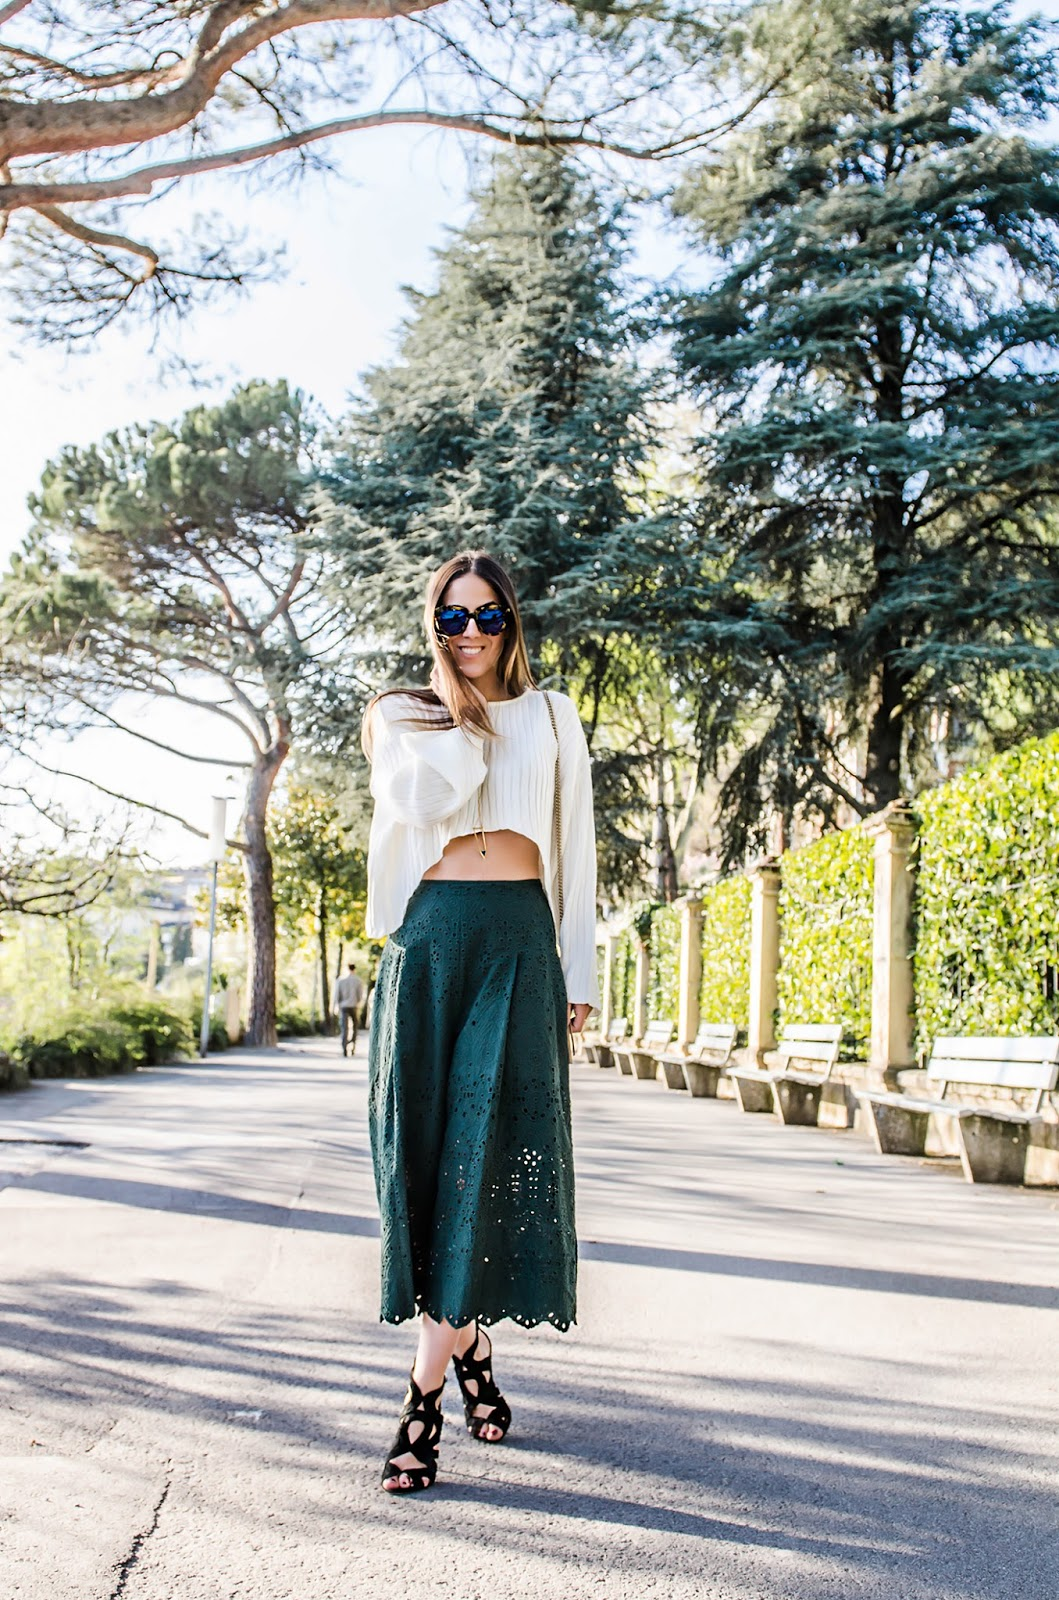 alison liaudat, blog from switzerland, blog mode suisse, swiss fashion blog, stylemoi, H&M, culotte short, Karen Walker, Zara black sandals, outfit of the day, fashion blogger,